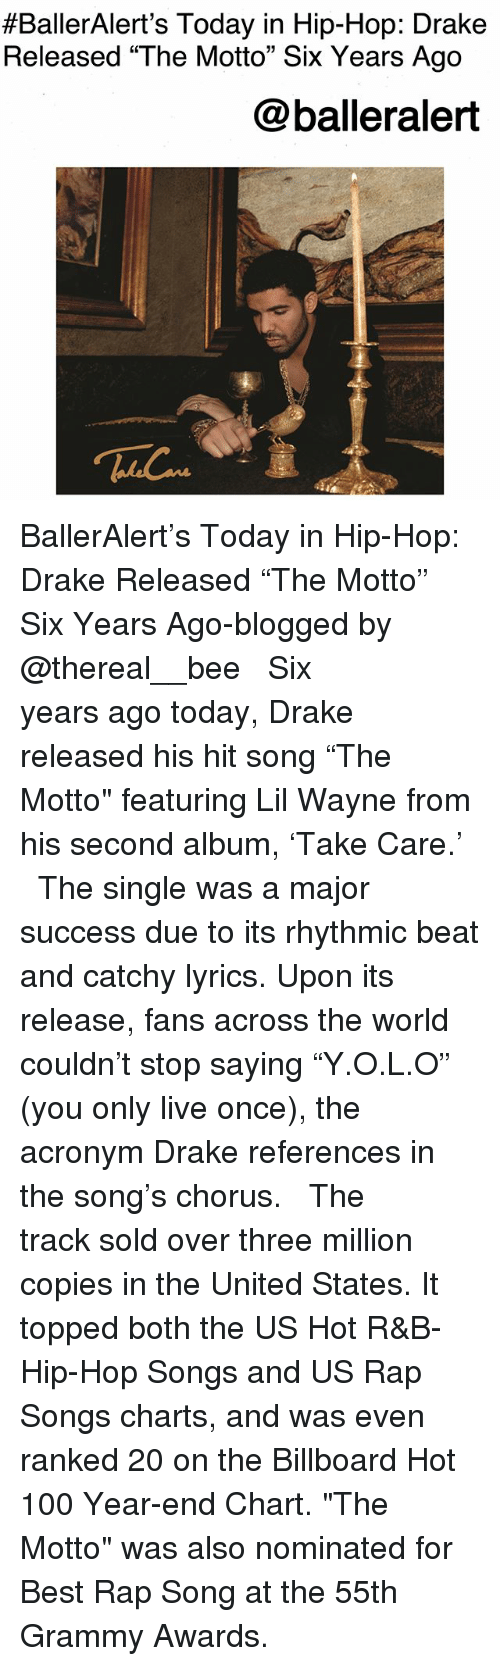 """Anaconda, Billboard, and Drake:  #BallerAlert's Today in Hip-Hop: Drake  Released """"The Motto"""" Six Years Ago  @balleralert BallerAlert's Today in Hip-Hop: Drake Released """"The Motto"""" Six Years Ago-blogged by @thereal__bee ⠀⠀⠀⠀⠀⠀⠀⠀⠀ ⠀⠀ Six years ago today, Drake released his hit song """"The Motto"""" featuring Lil Wayne from his second album, 'Take Care.' ⠀⠀⠀⠀⠀⠀⠀⠀⠀ ⠀⠀ The single was a major success due to its rhythmic beat and catchy lyrics. Upon its release, fans across the world couldn't stop saying """"Y.O.L.O"""" (you only live once), the acronym Drake references in the song's chorus. ⠀⠀⠀⠀⠀⠀⠀⠀⠀ ⠀⠀ The track sold over three million copies in the United States. It topped both the US Hot R&B-Hip-Hop Songs and US Rap Songs charts, and was even ranked 20 on the Billboard Hot 100 Year-end Chart. """"The Motto"""" was also nominated for Best Rap Song at the 55th Grammy Awards."""